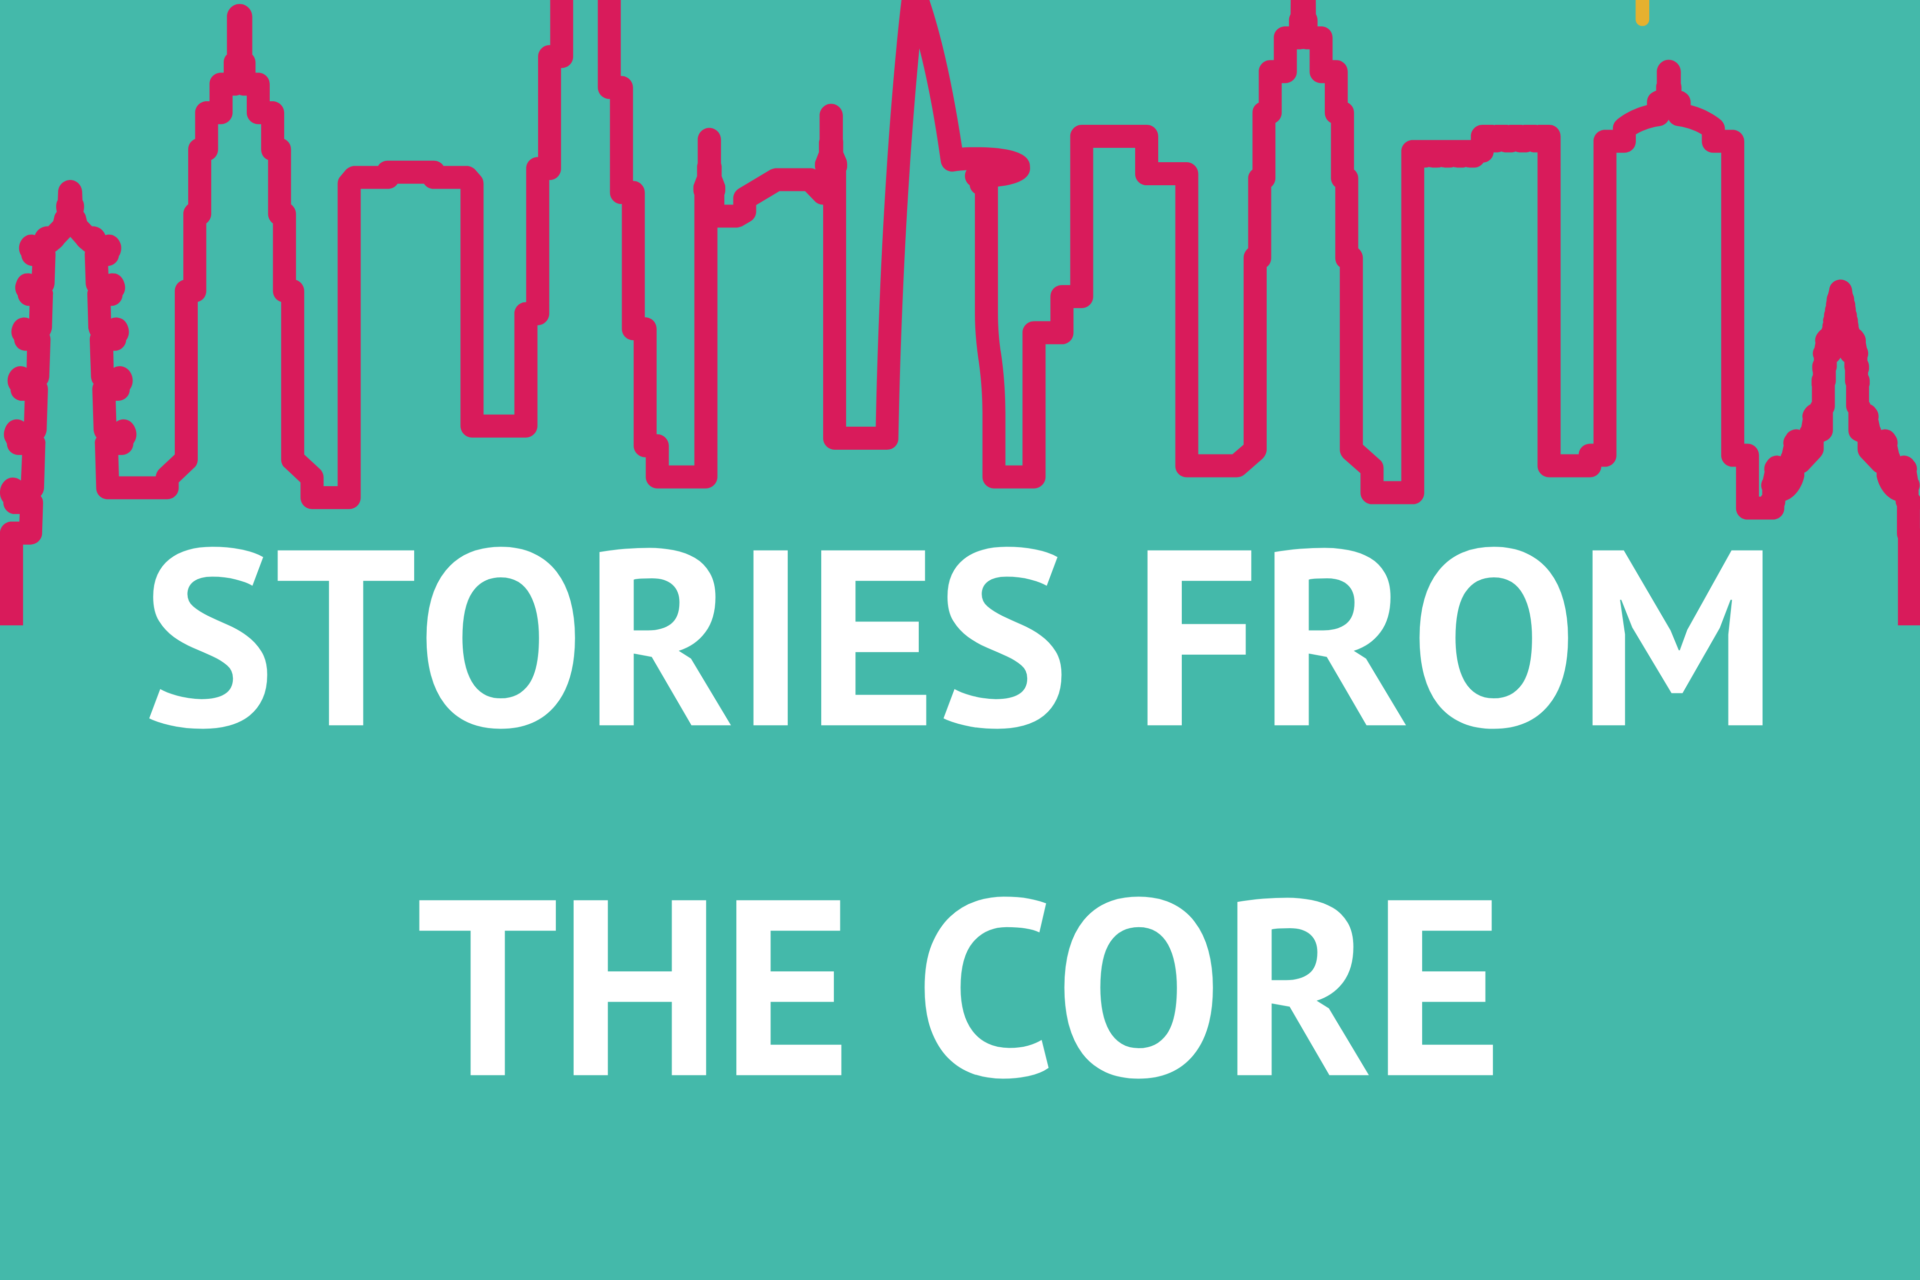 Stories From the Core show image